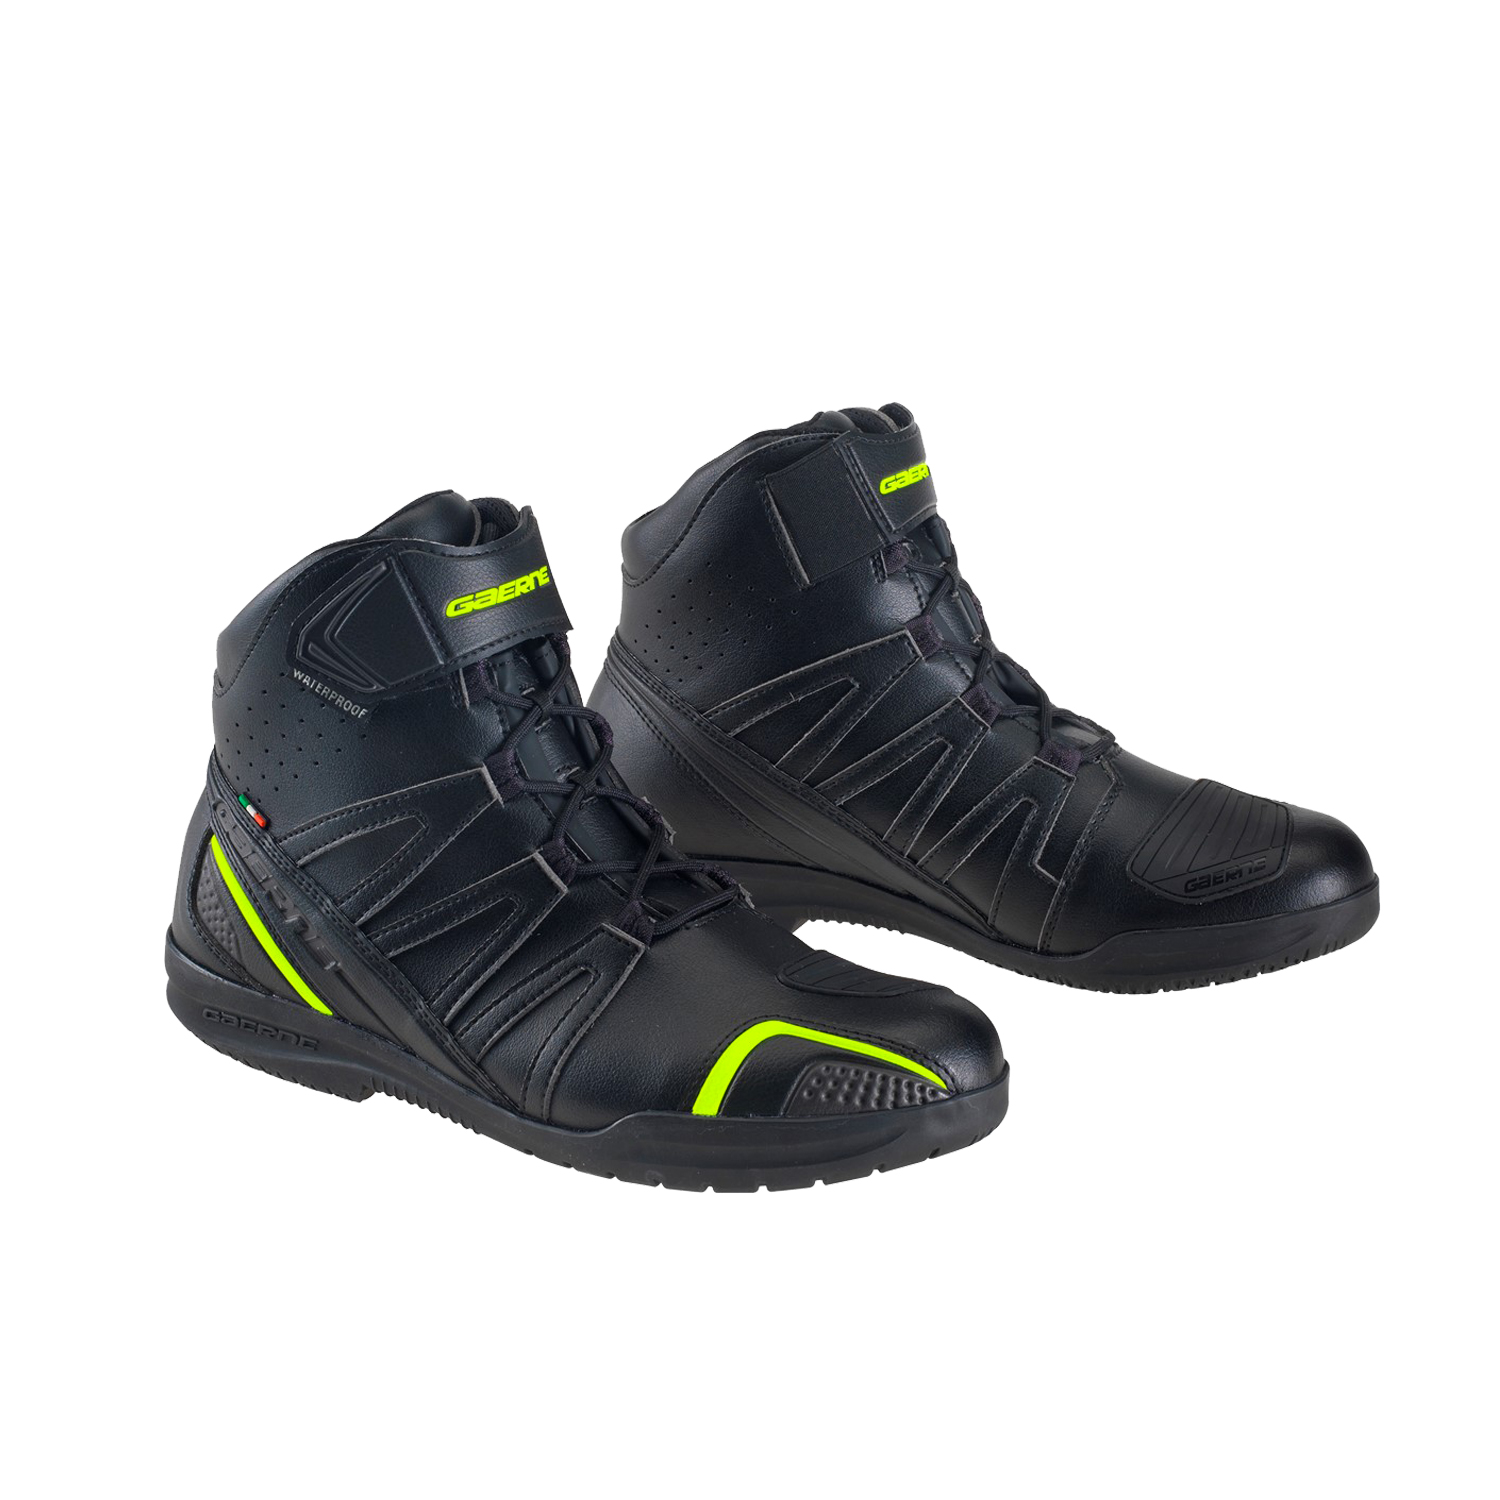 Scarpe shoes Gaerne G.ASPHALT RACING Waterproof strada touring citta' moto